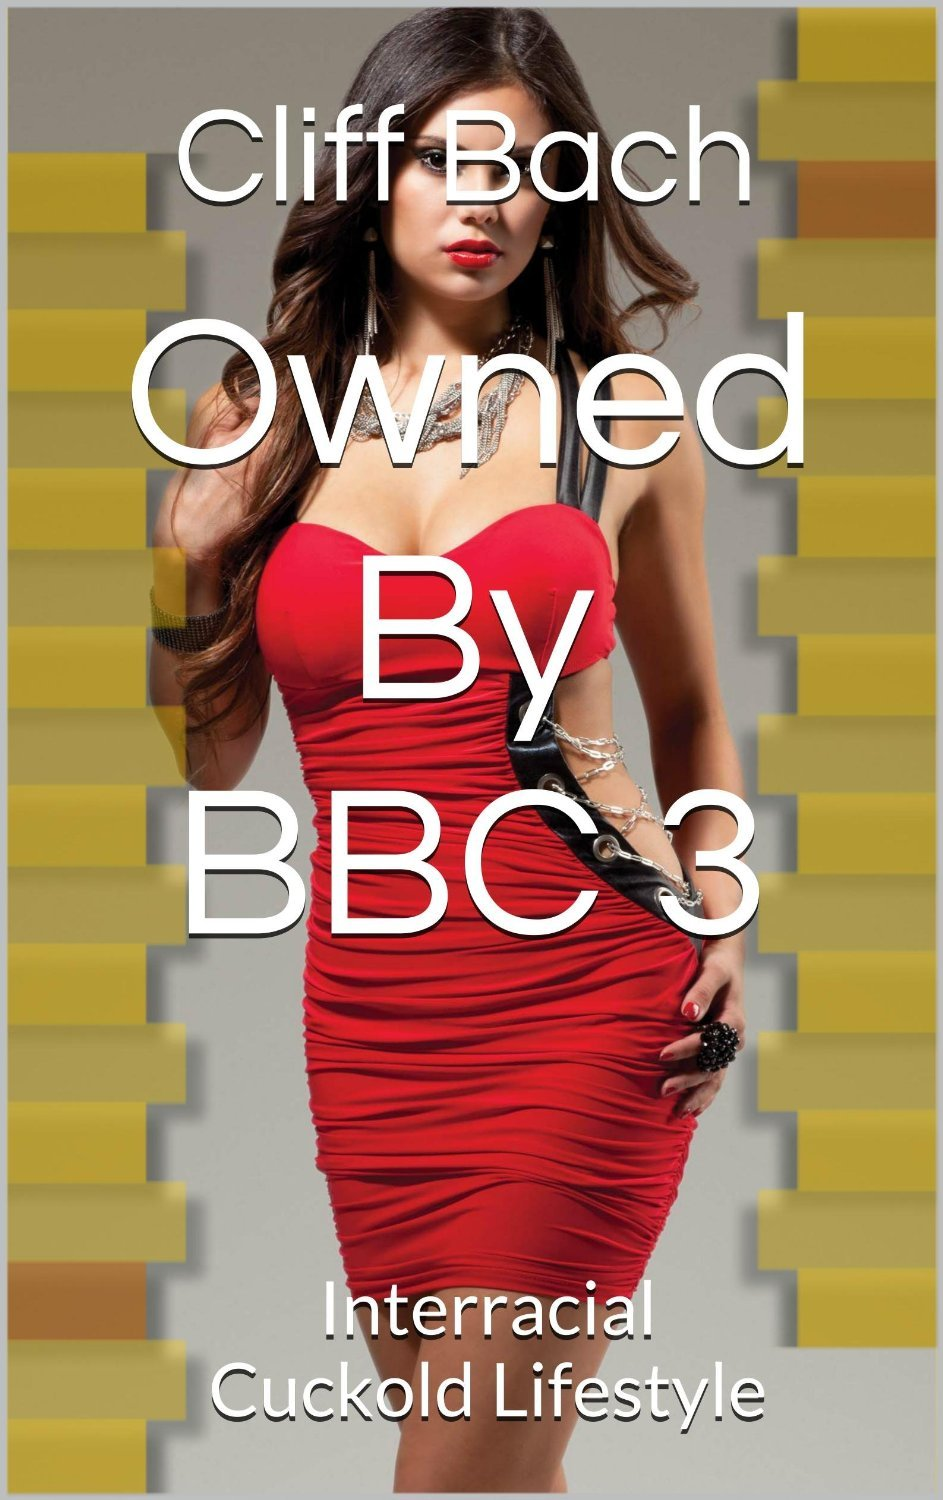 Owned By BBC 3: Interracial Cuckold Lifestyle Cliff Bach